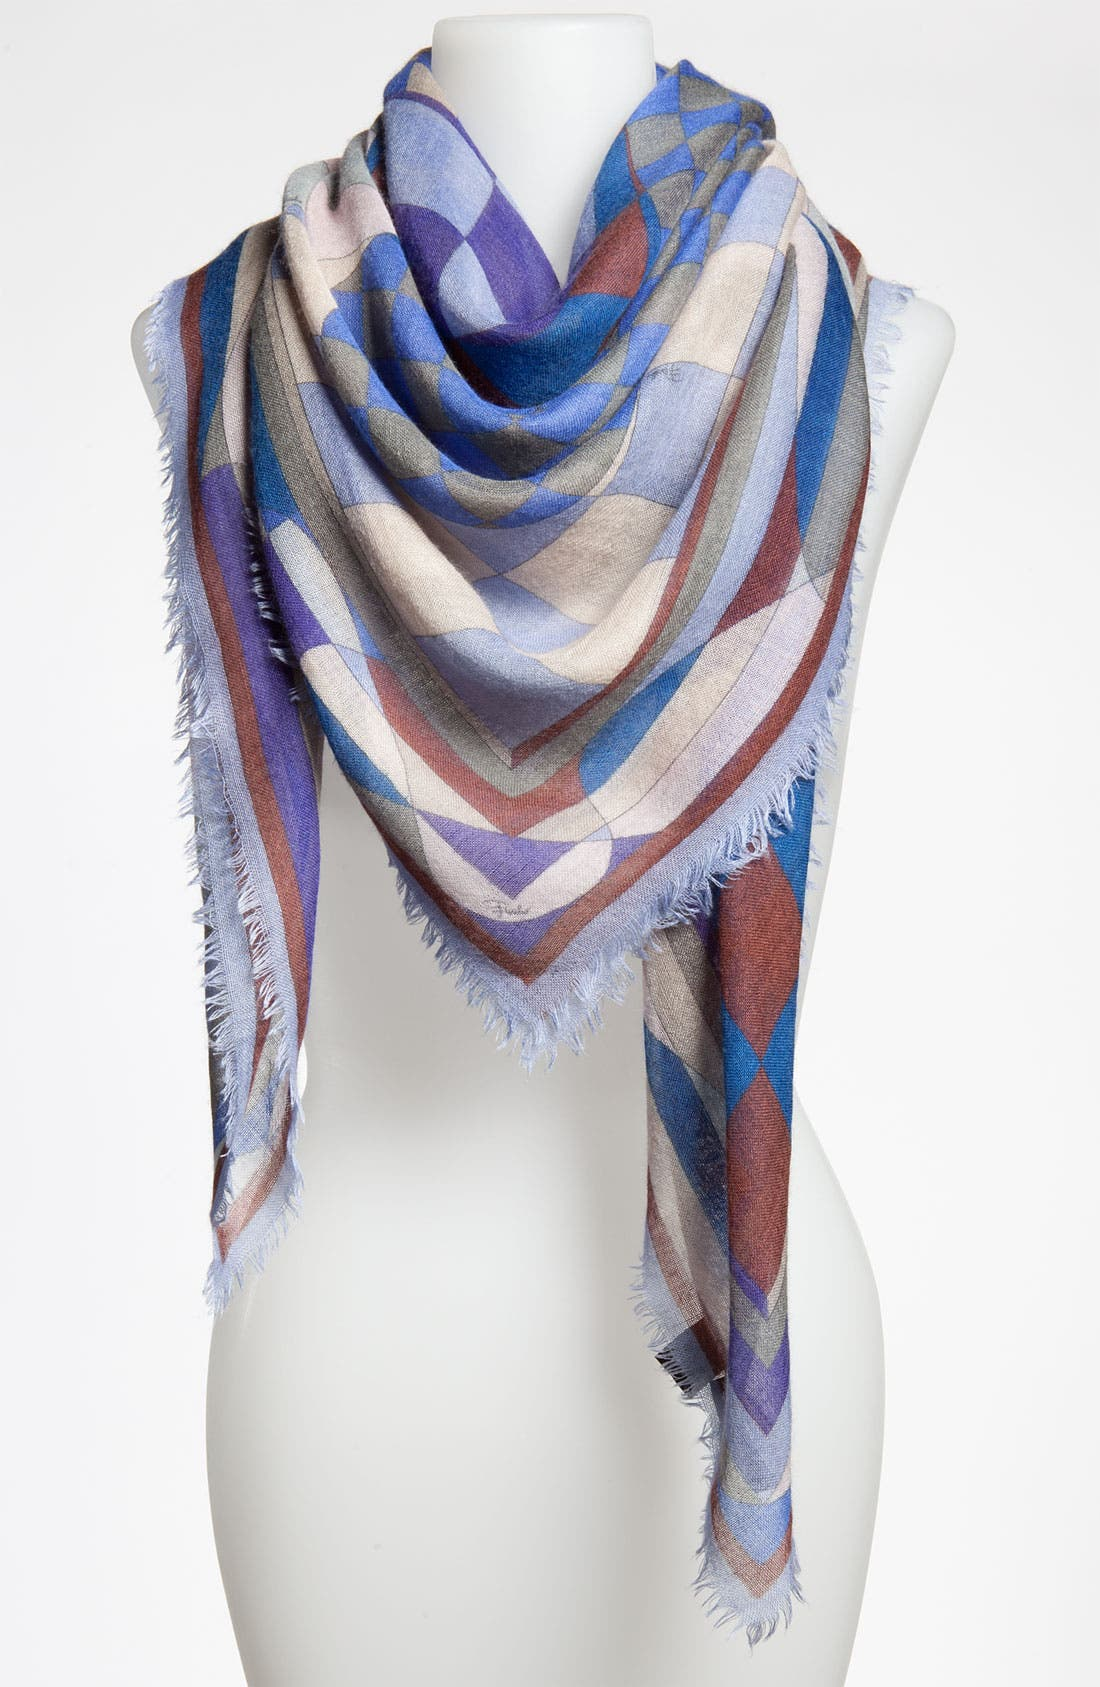 Alternate Image 1 Selected - Emilio Pucci 'Giardino' Cashmere & Silk Scarf